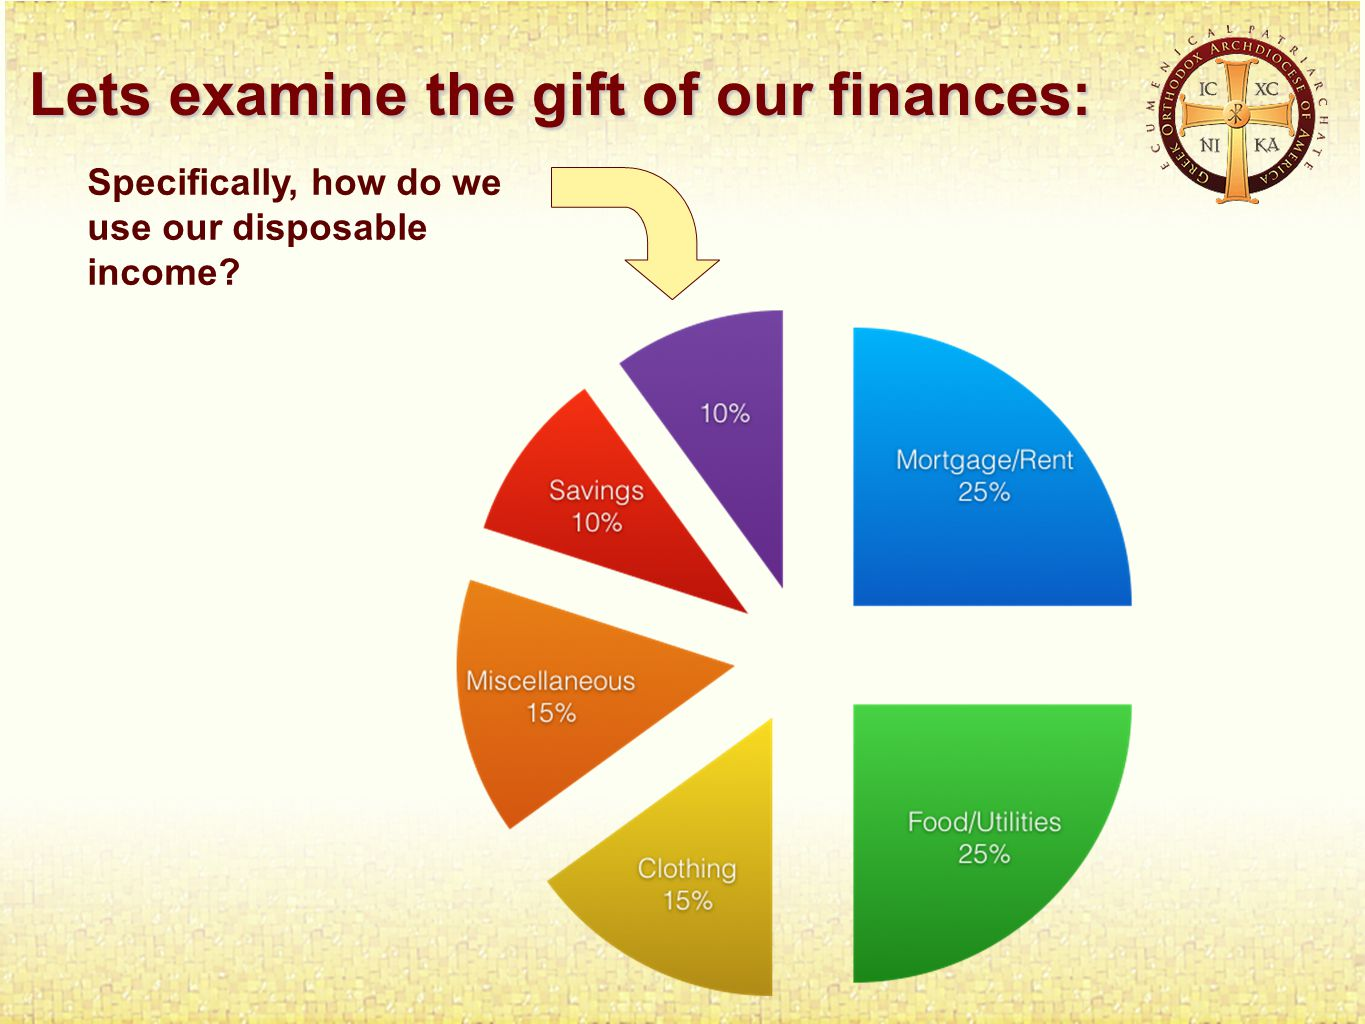 Lets examine the gift of our finances: Specifically, how do we use our disposable income?